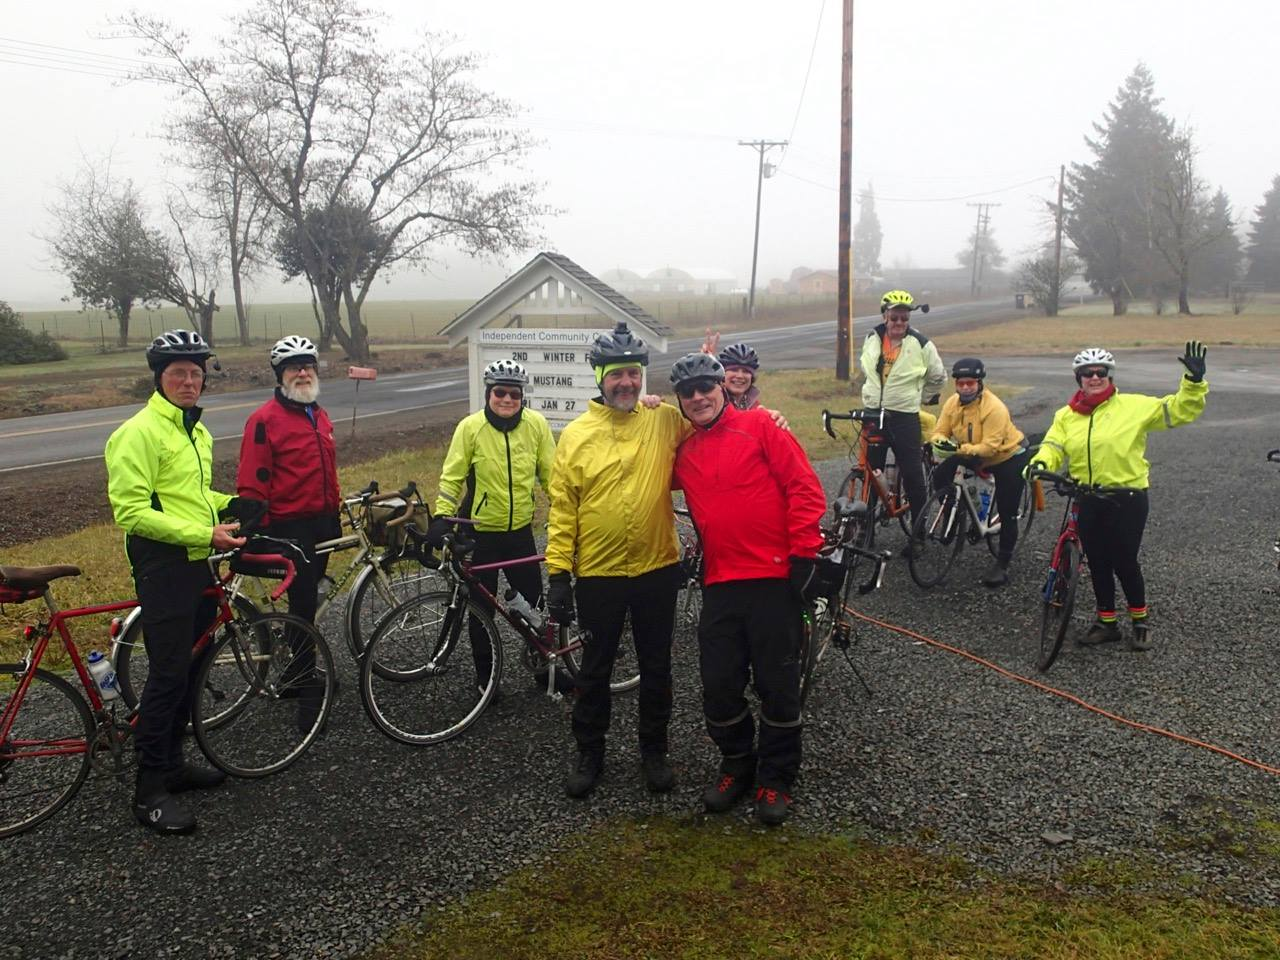 Tenners on a foggy ride